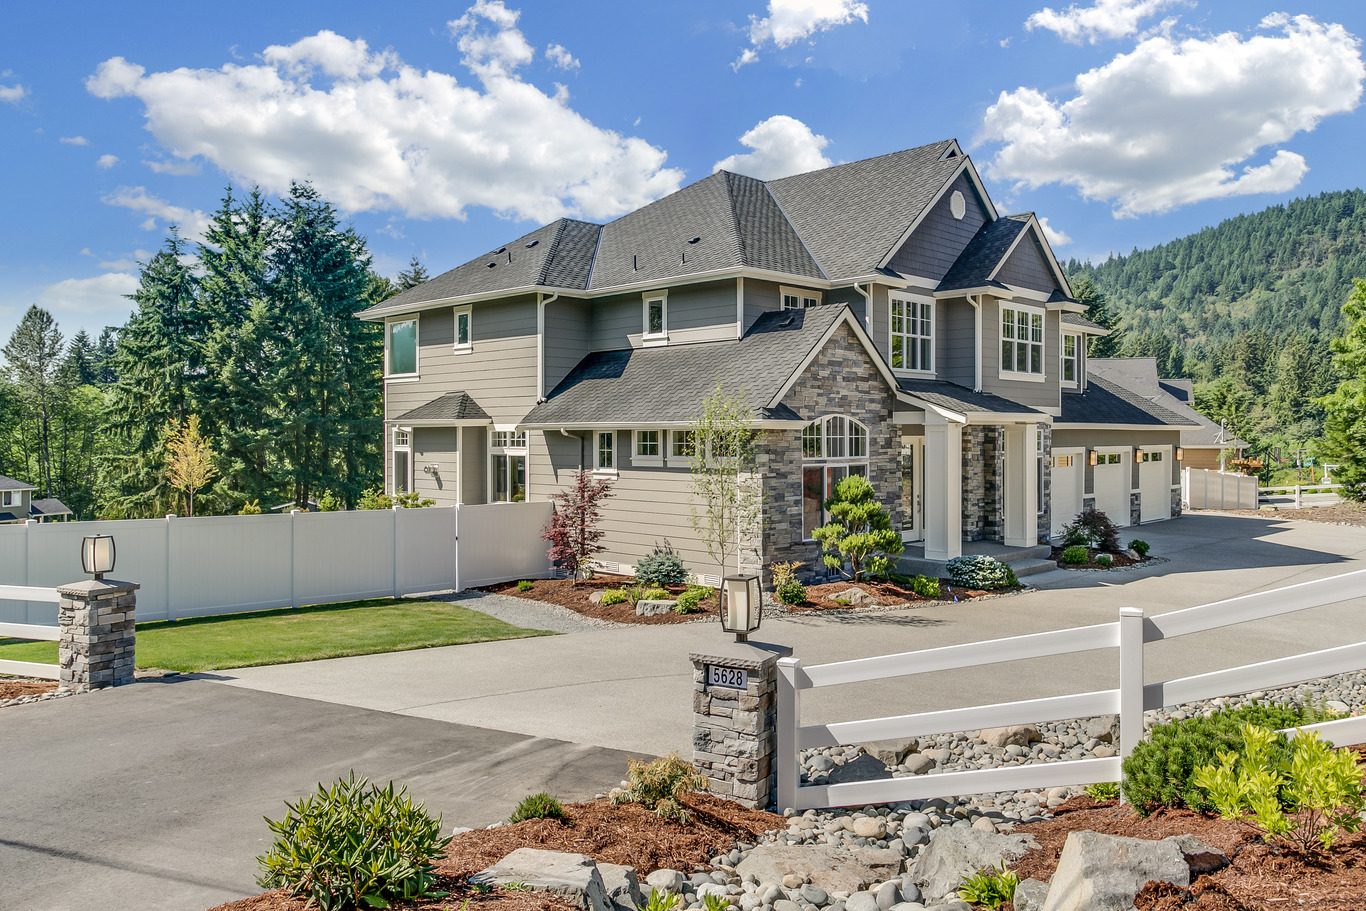 How to sell your existing home for top dollar the house designers make sure your home looks good from all angles landscaping is very important so be sure to use greenery thats easy to maintain and looks great in all malvernweather Choice Image